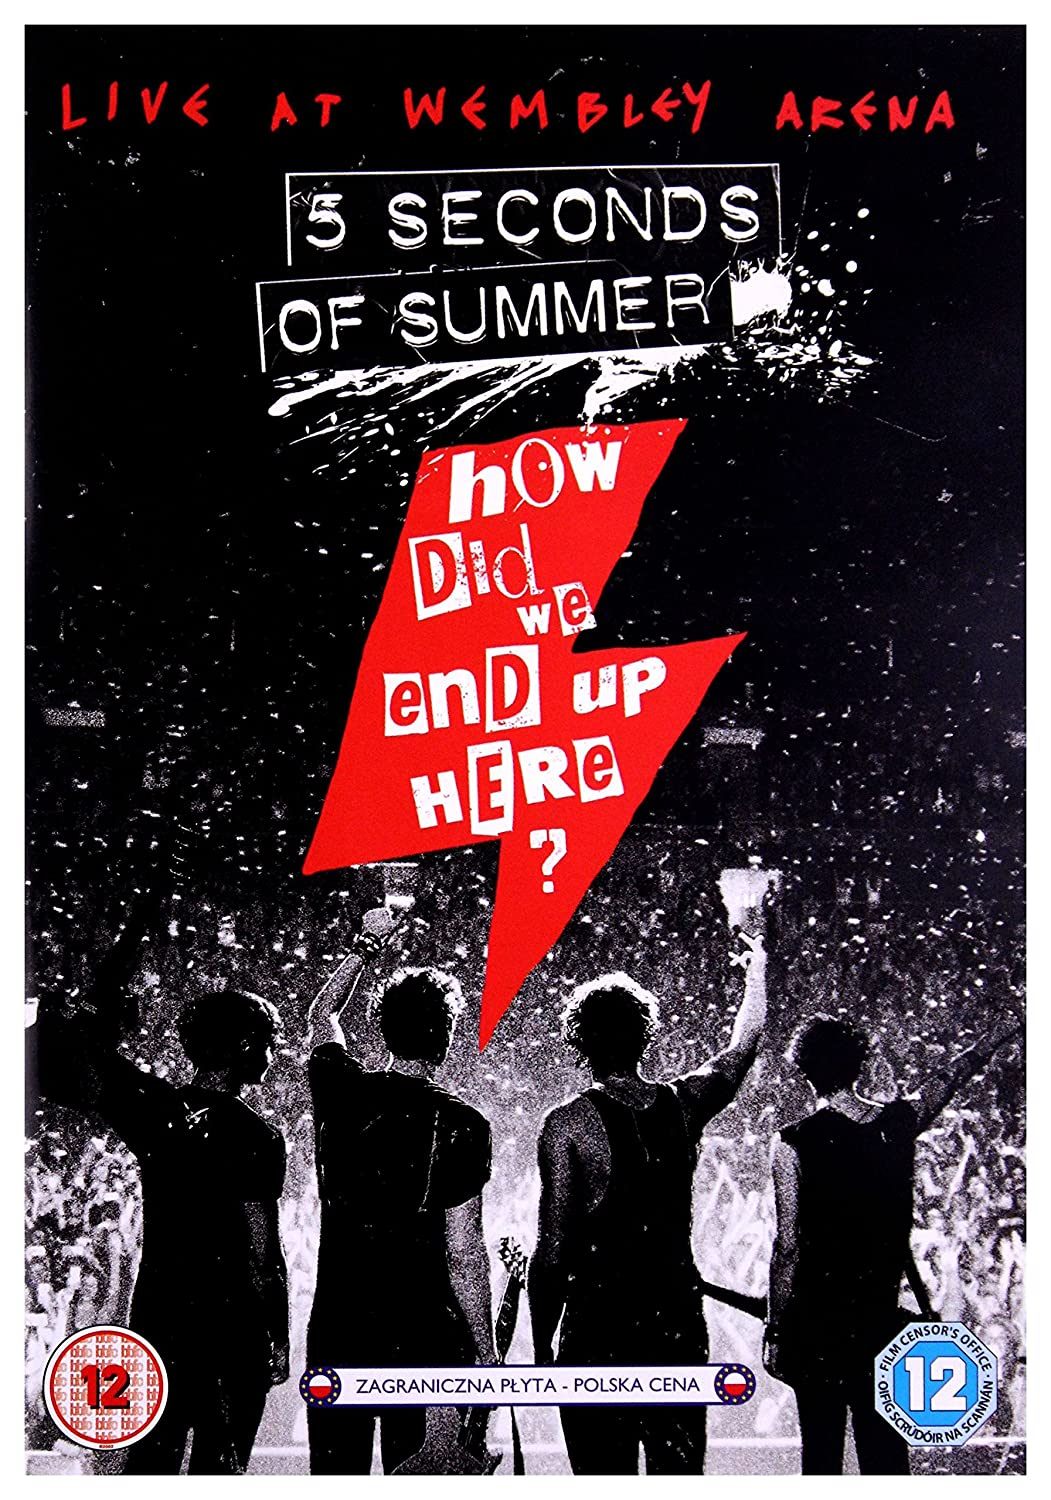 How Did We End Up Here 5 Seconds Of Summer Live At Wembley Arena Dvd Region Free Movies Tv